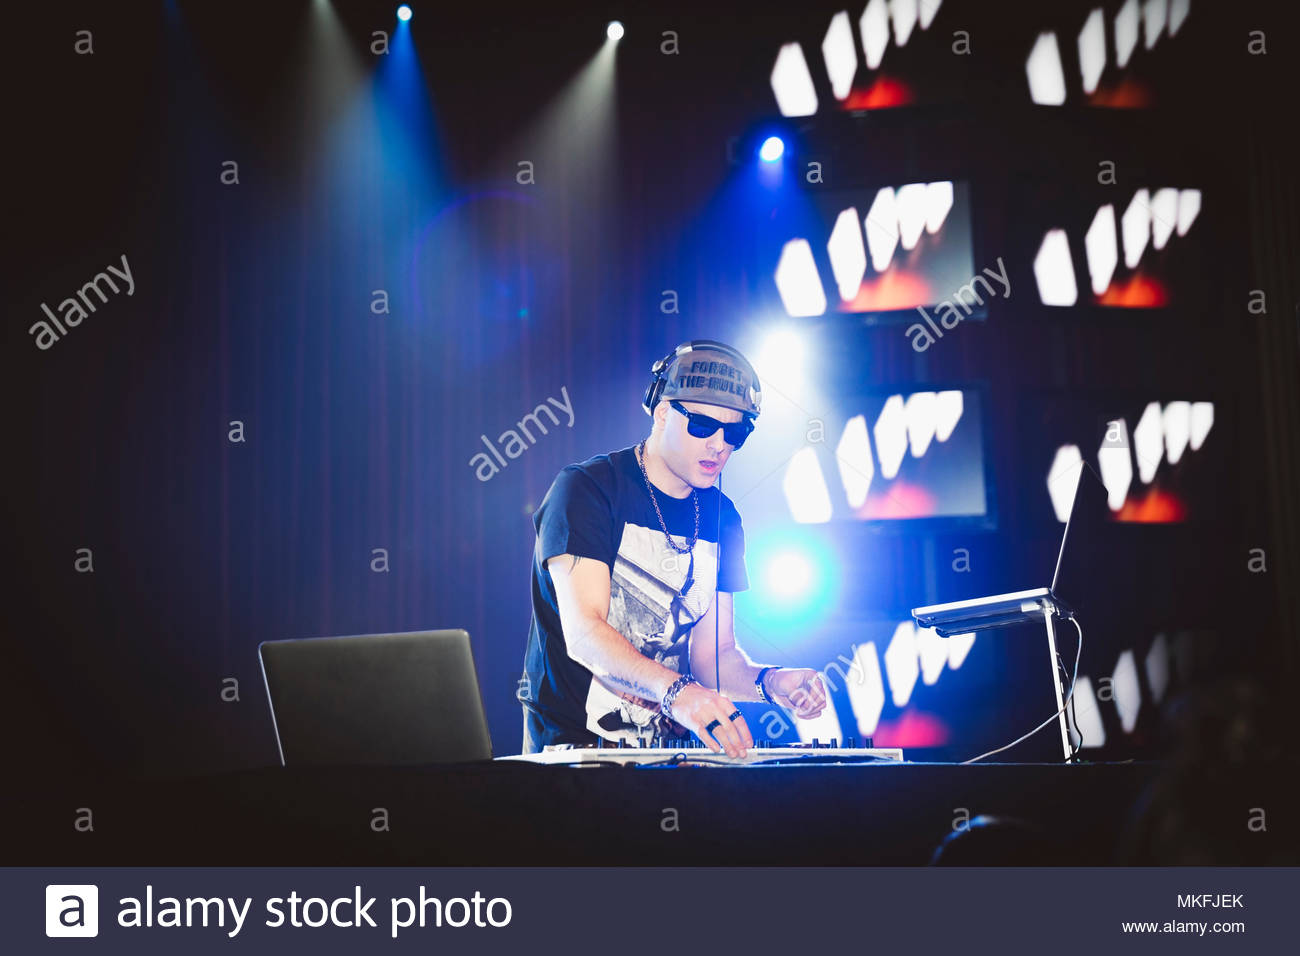 DJ playing music at sound mixer and laptops on nightclub stage - Stock Image